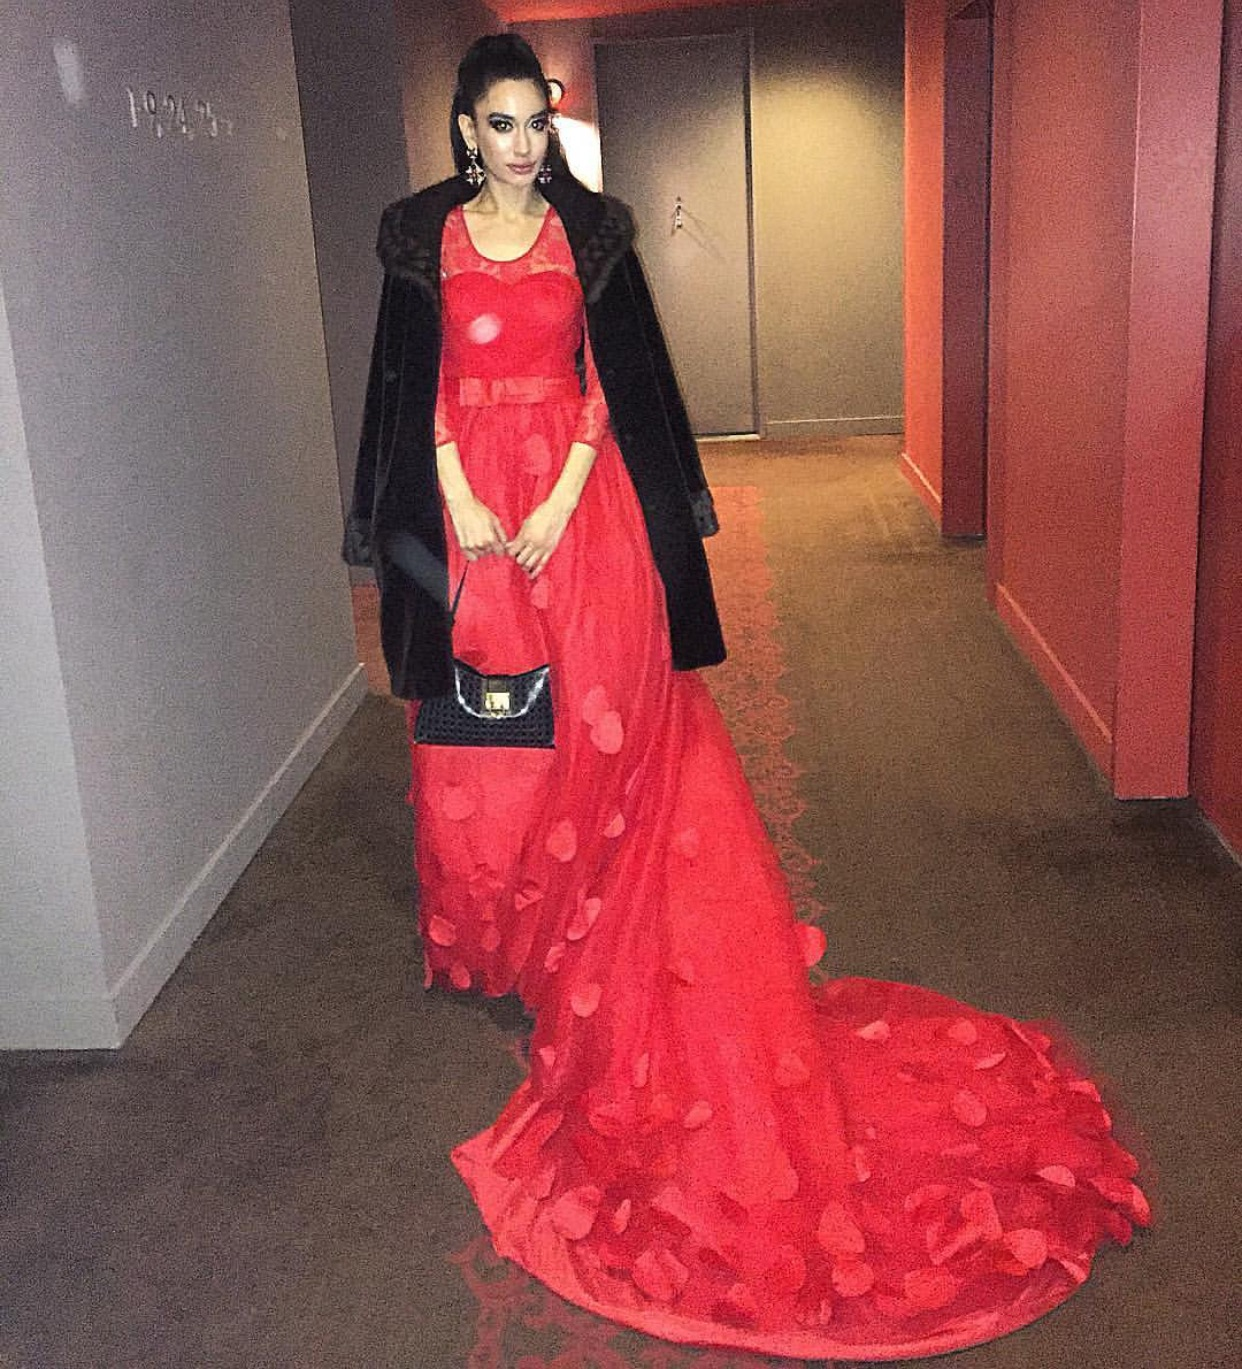 Style Breakdown for MY LUNAR NEW YEAR LOOK for the Chinese New Year celebration at the World Panda Foundation Gala in association with the Chinese Consulate and The People's Republic of China at the legendary RAINBOW ROOM AT NBC STUDIOS! 💃🏻 STYLE NOTES: COUTURE GOWN BY CHINESE DESIGNER 王艳 WANG YAN; BAG BY SALVATORE FERRAGAMO; EARRINGS BY DOLCE & GABBANA; MY GLAM MAKEUP LOOK BOUGHT TO YOU EXCLUSIVELY BY GIORGIO ARMANI BEAUTY!